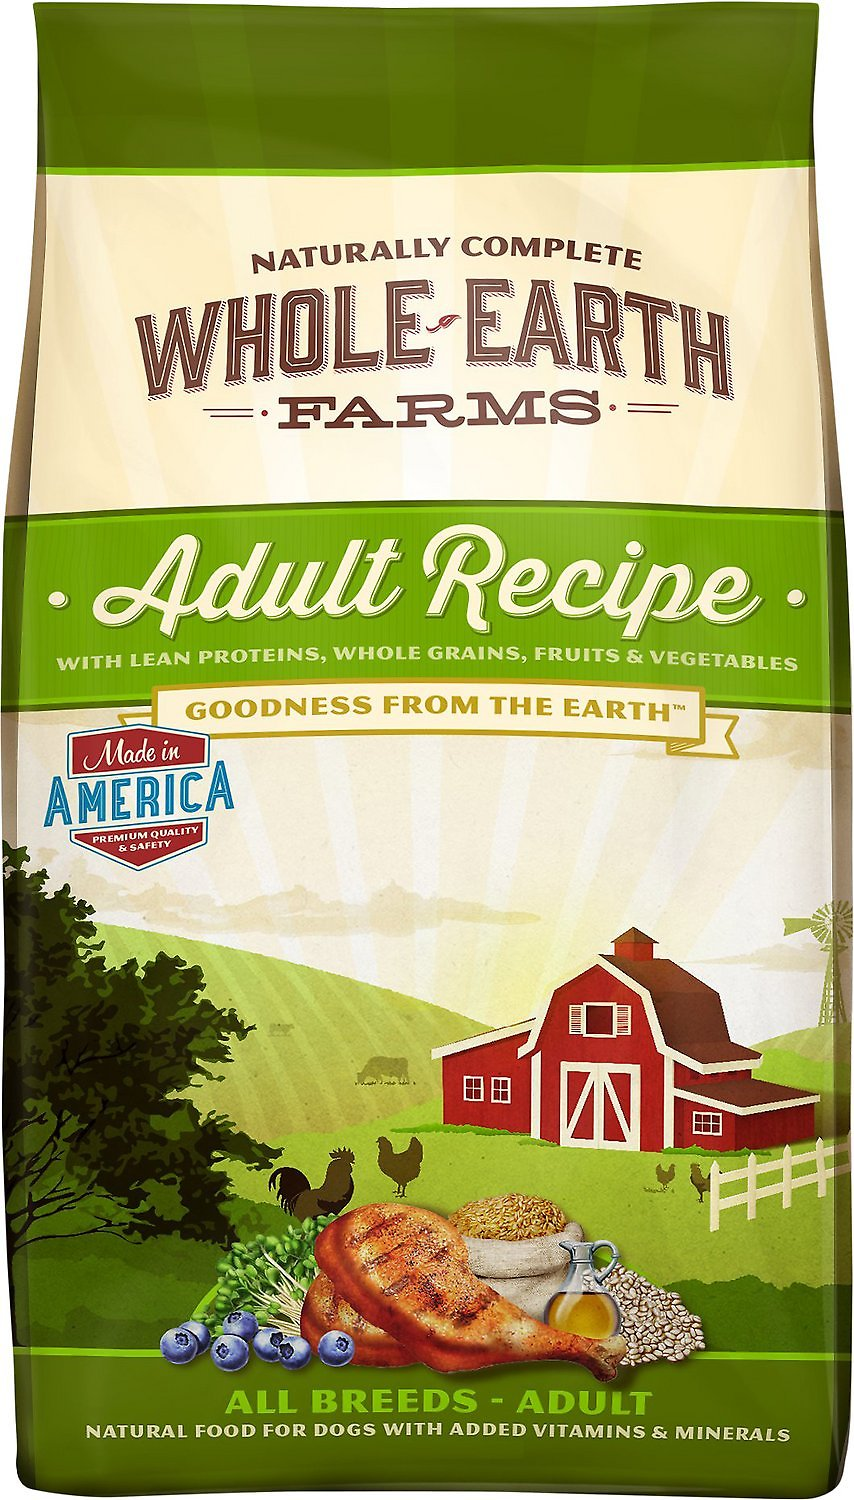 Whole Earth Farms Adult Recipe Dry Dog Food Image